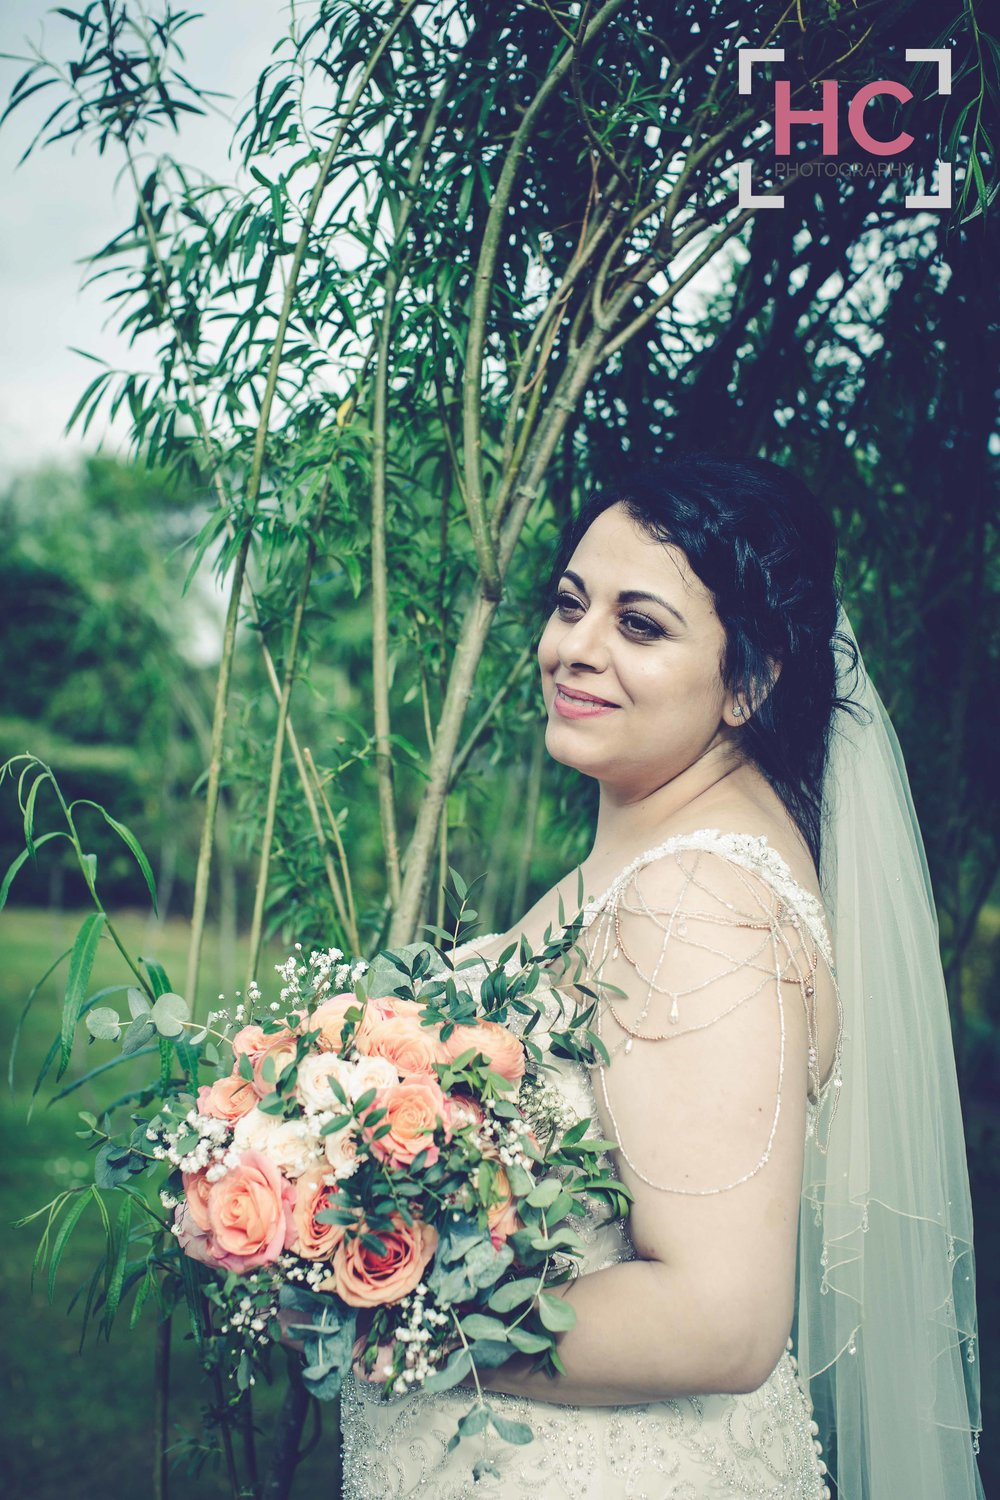 Marianna & Matt's Wedding_Helen Cotton Photography©1028.JPG